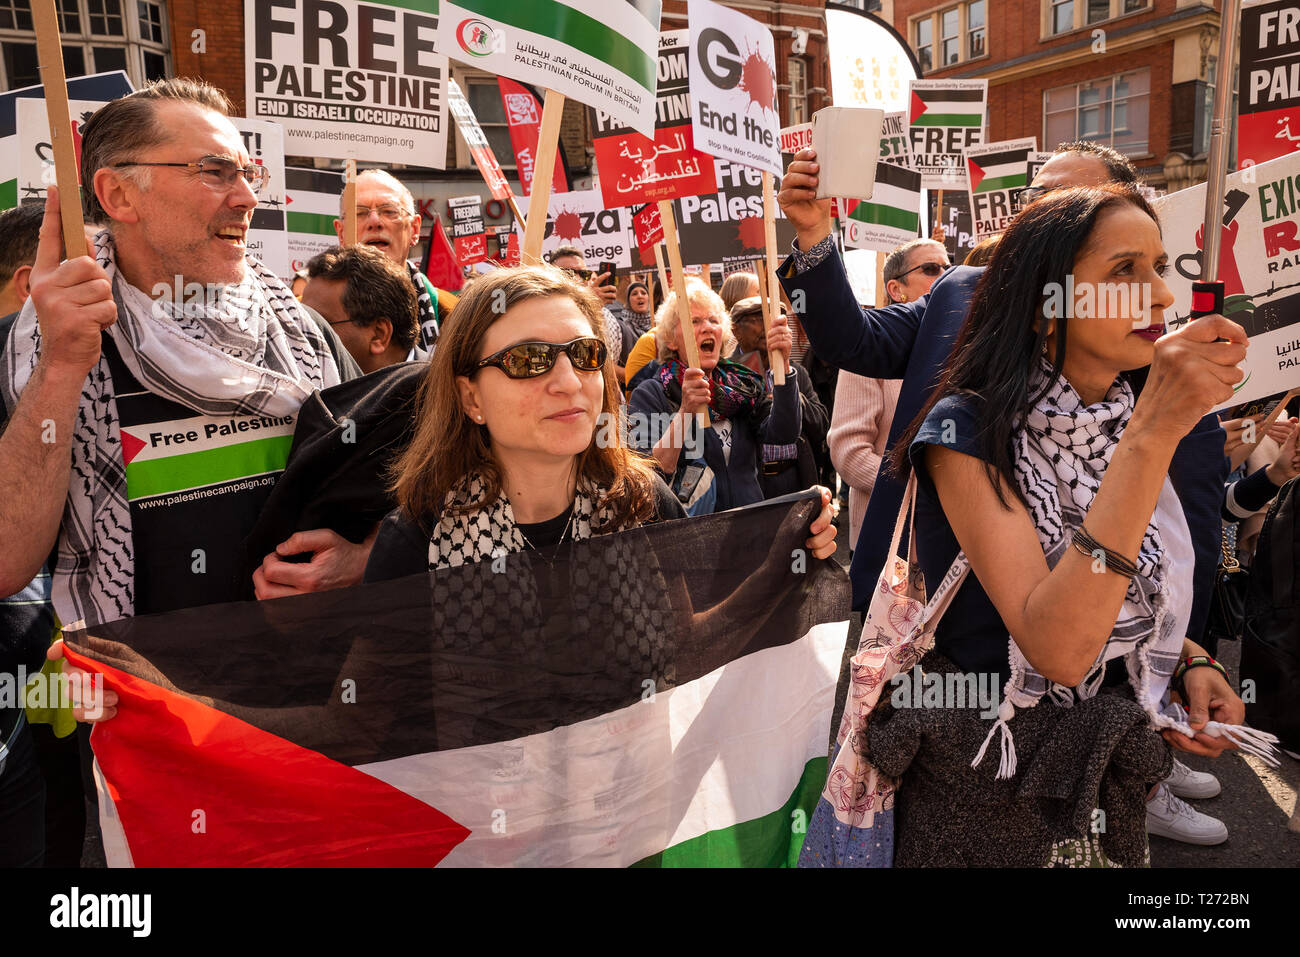 London, UK. 30th March 2019. Rally for Palestine, Exist, Resist and Return. Held outside the Israeli Embassy on Palestinian Land Day. Demanding freedom, justice and equality for the Palestinian people. March 30th also marks the the 1st anniversary of the start of the Great Return March. Organised by: Palestine Solidarity Campaign, Stop the War Coalition, Palestinian Forum in Britain, Friends of Al- Aqsa and Muslim Association of Britain. Credit: Stephen Bell/Alamy Live News. Stock Photo